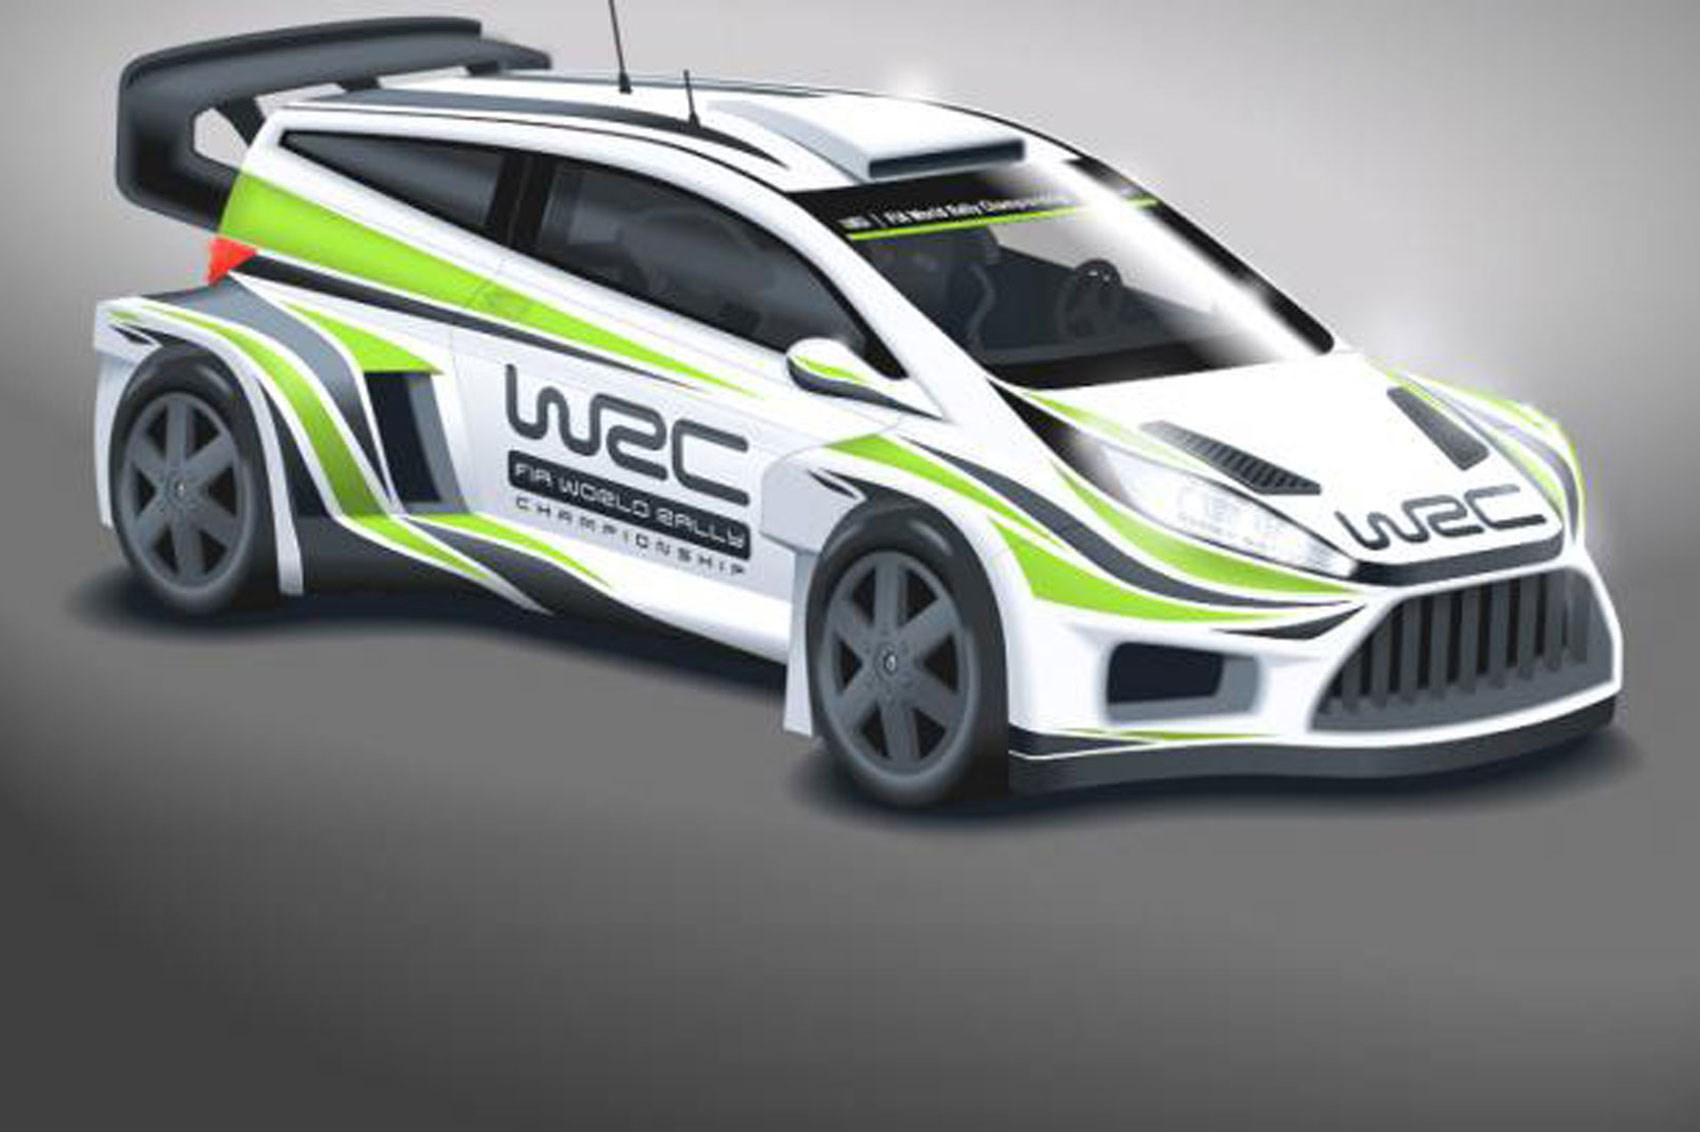 Ultrablogus  Terrific Wild New Look For Wrc Cars In  By Car Magazine With Outstanding Wrc Cars Will Get Wider Bodies Bigger Wings And More Power For  With Easy On The Eye Hyundai Elantra  Interior Also Renault Clio  Interior In Addition  Bmw X Interior And Vw Transporter Interior As Well As Interior Honda Civic  Additionally Infiniti Interior From Carmagazinecouk With Ultrablogus  Outstanding Wild New Look For Wrc Cars In  By Car Magazine With Easy On The Eye Wrc Cars Will Get Wider Bodies Bigger Wings And More Power For  And Terrific Hyundai Elantra  Interior Also Renault Clio  Interior In Addition  Bmw X Interior From Carmagazinecouk